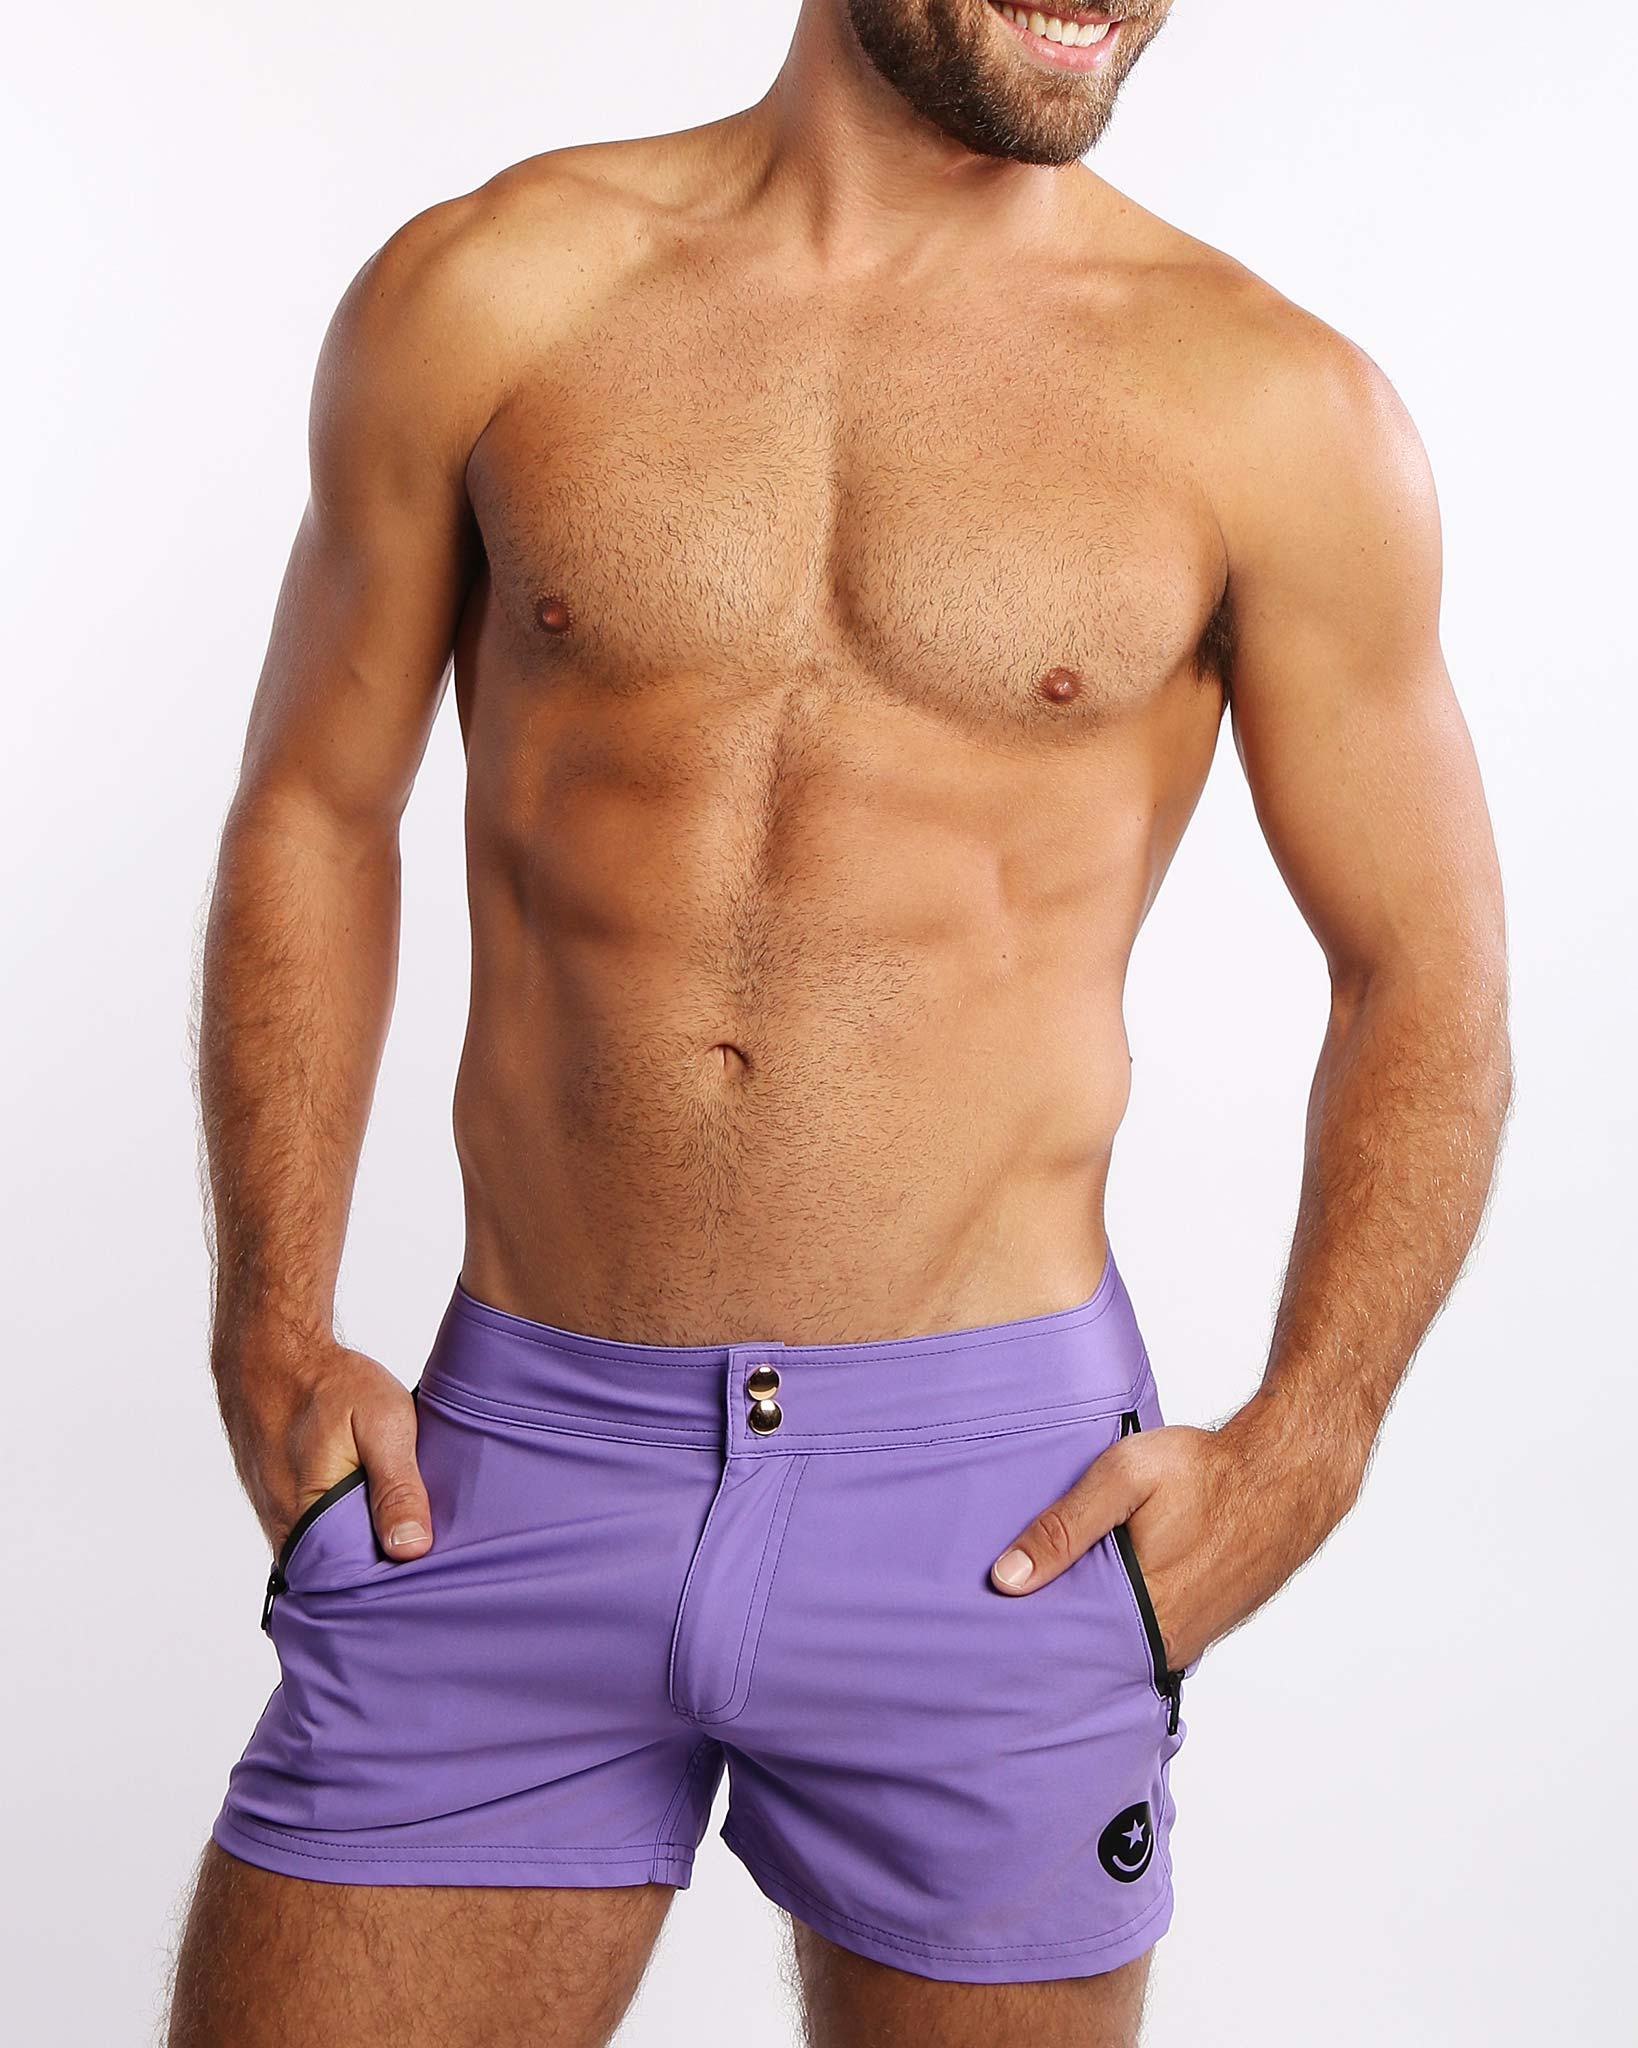 Purple Reign Beach Shorts Bang Clothes Men Swimwear Swimsuits